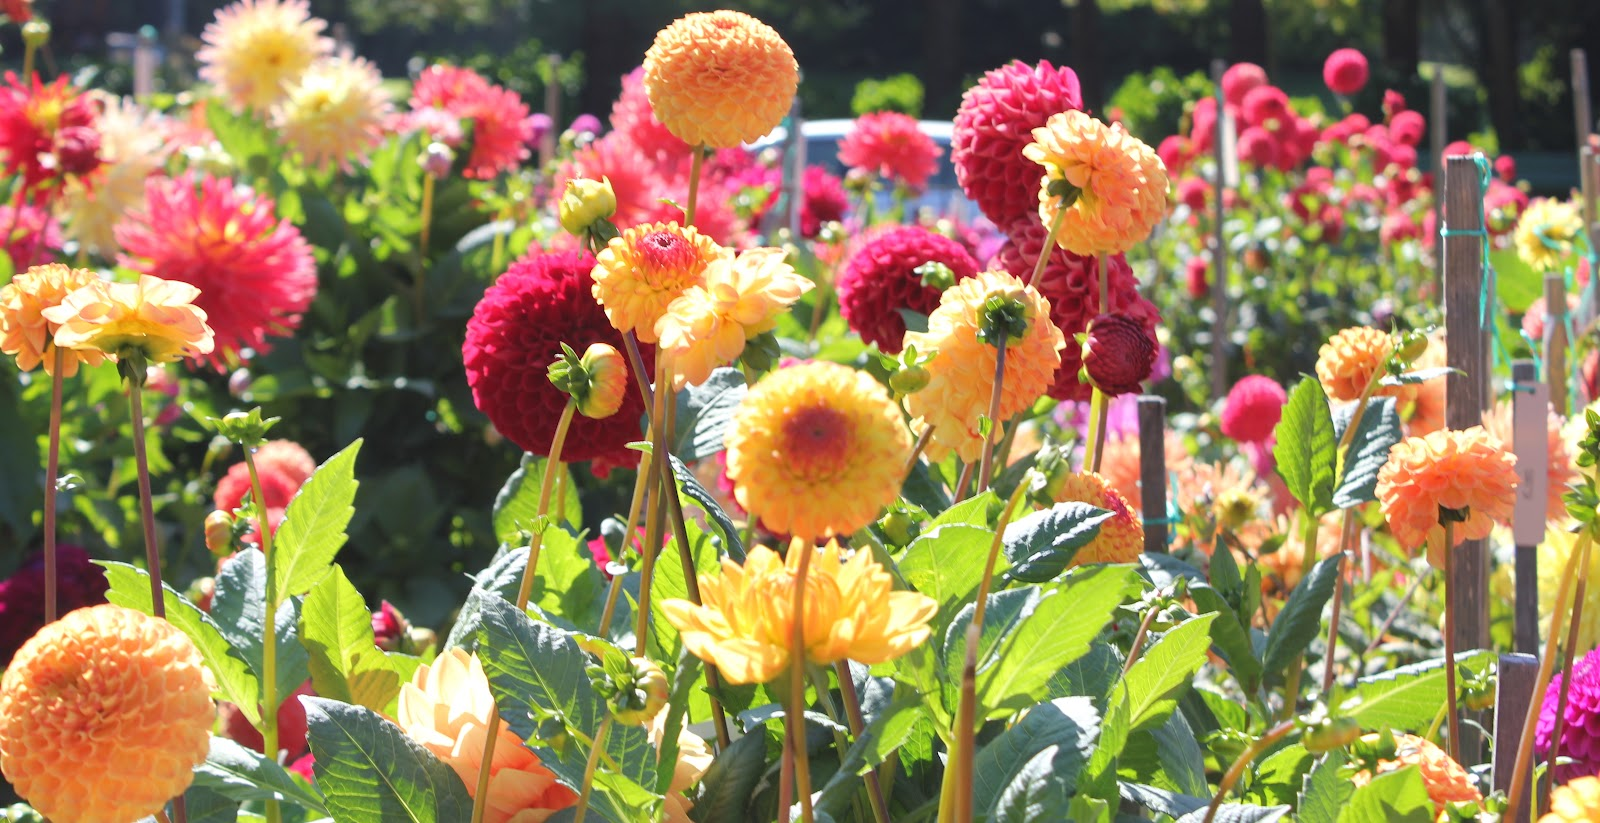 San Francisco FYI net: Dahlia Dell - Conservatory of Flowers